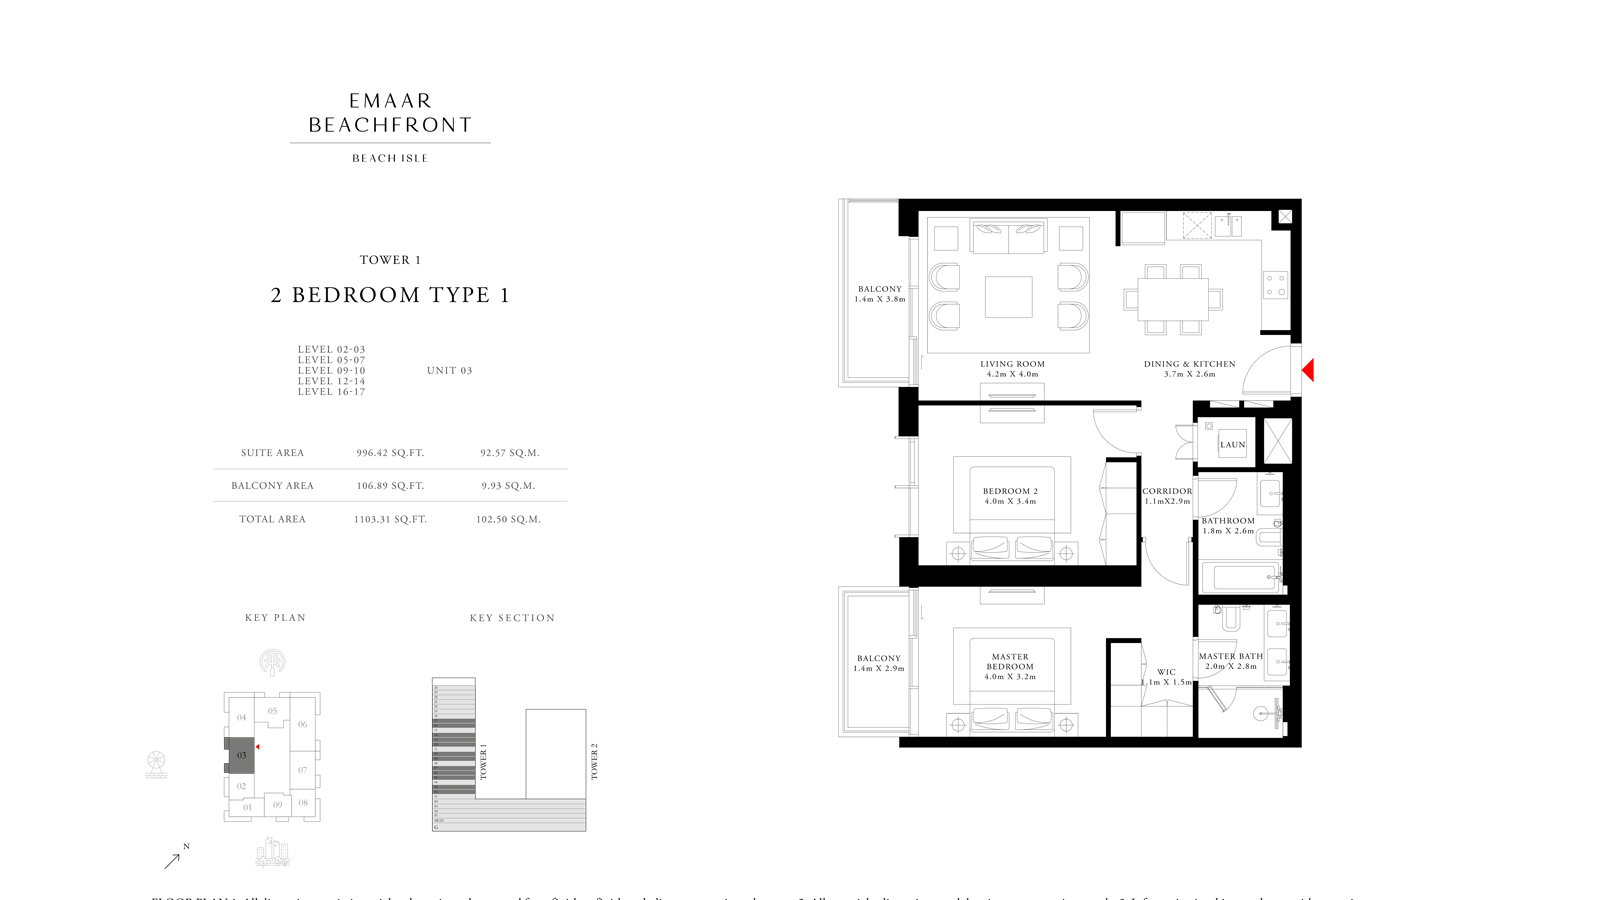 2 Bedroom Type 1 Tower 1, Size 1103    sq. ft.